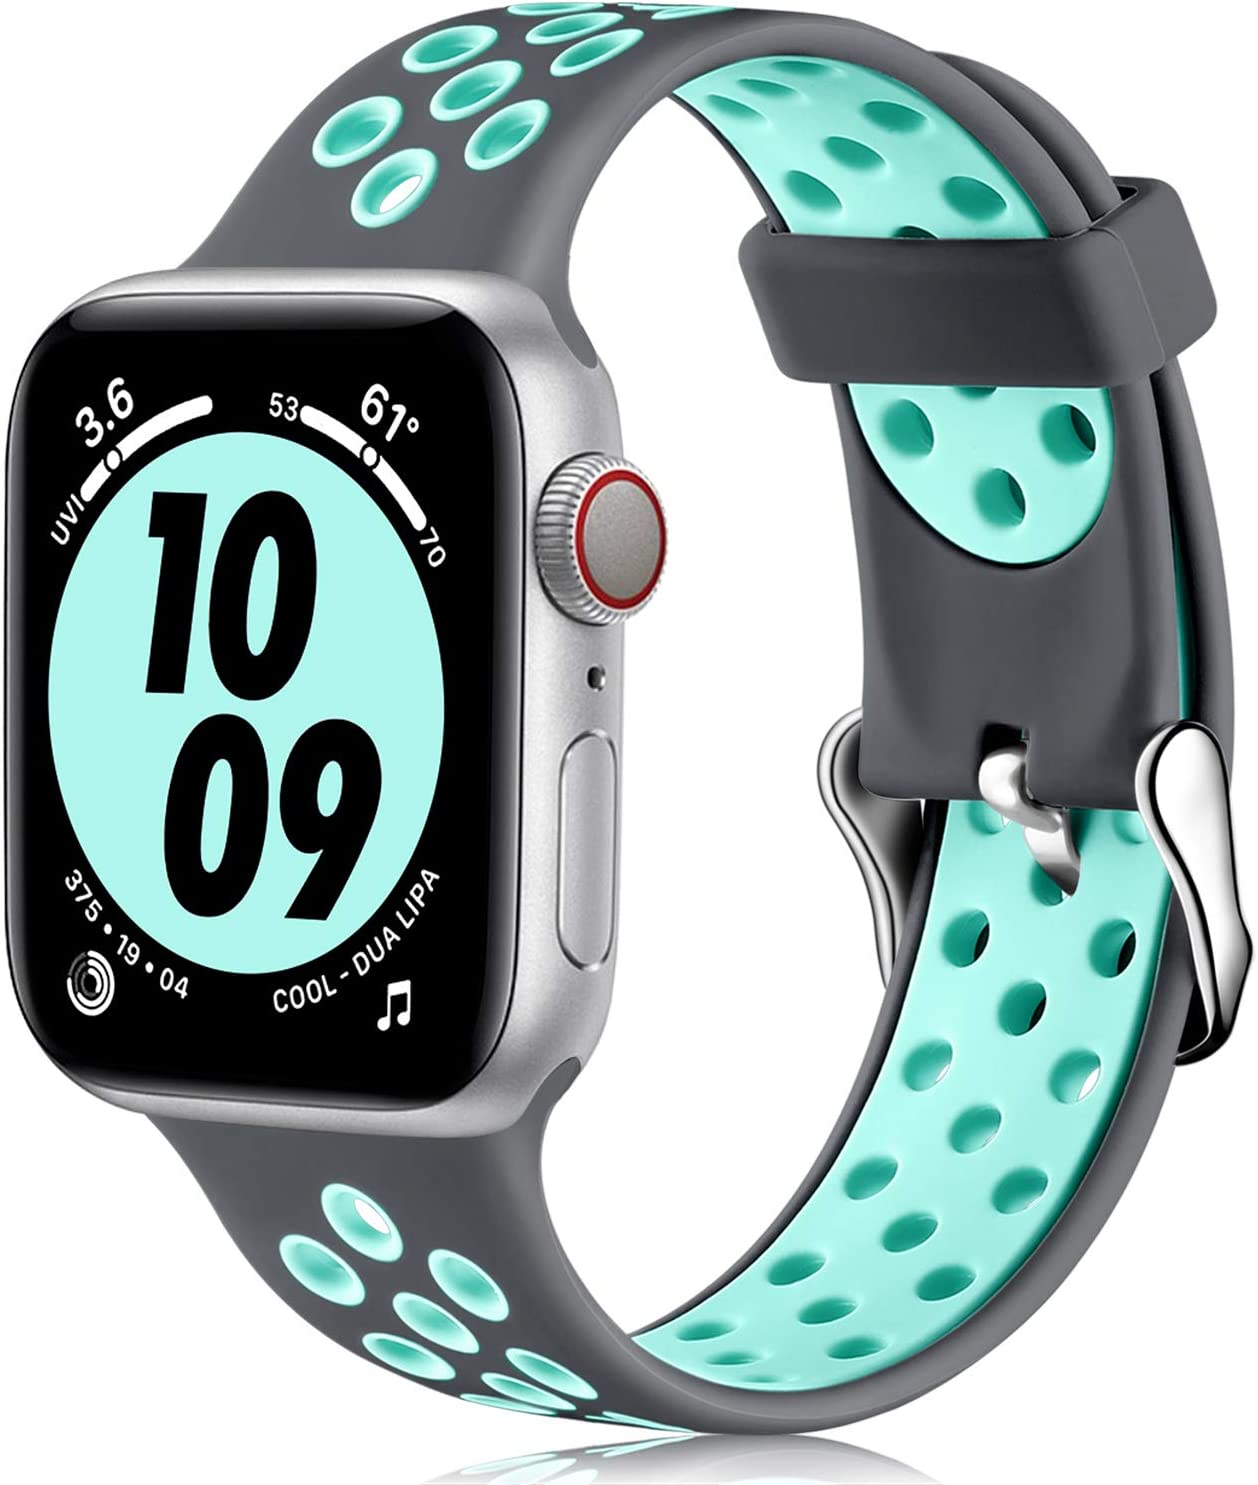 Nofeda bands Compatible with Apple Watch Band 38mm 40mm for Women Men,Soft Silicone Waterproof Breathable Replacement Wristband Sport Strap for iWatch Series 1/2/3/4/5/6/SE, Gray/Teal, S/M